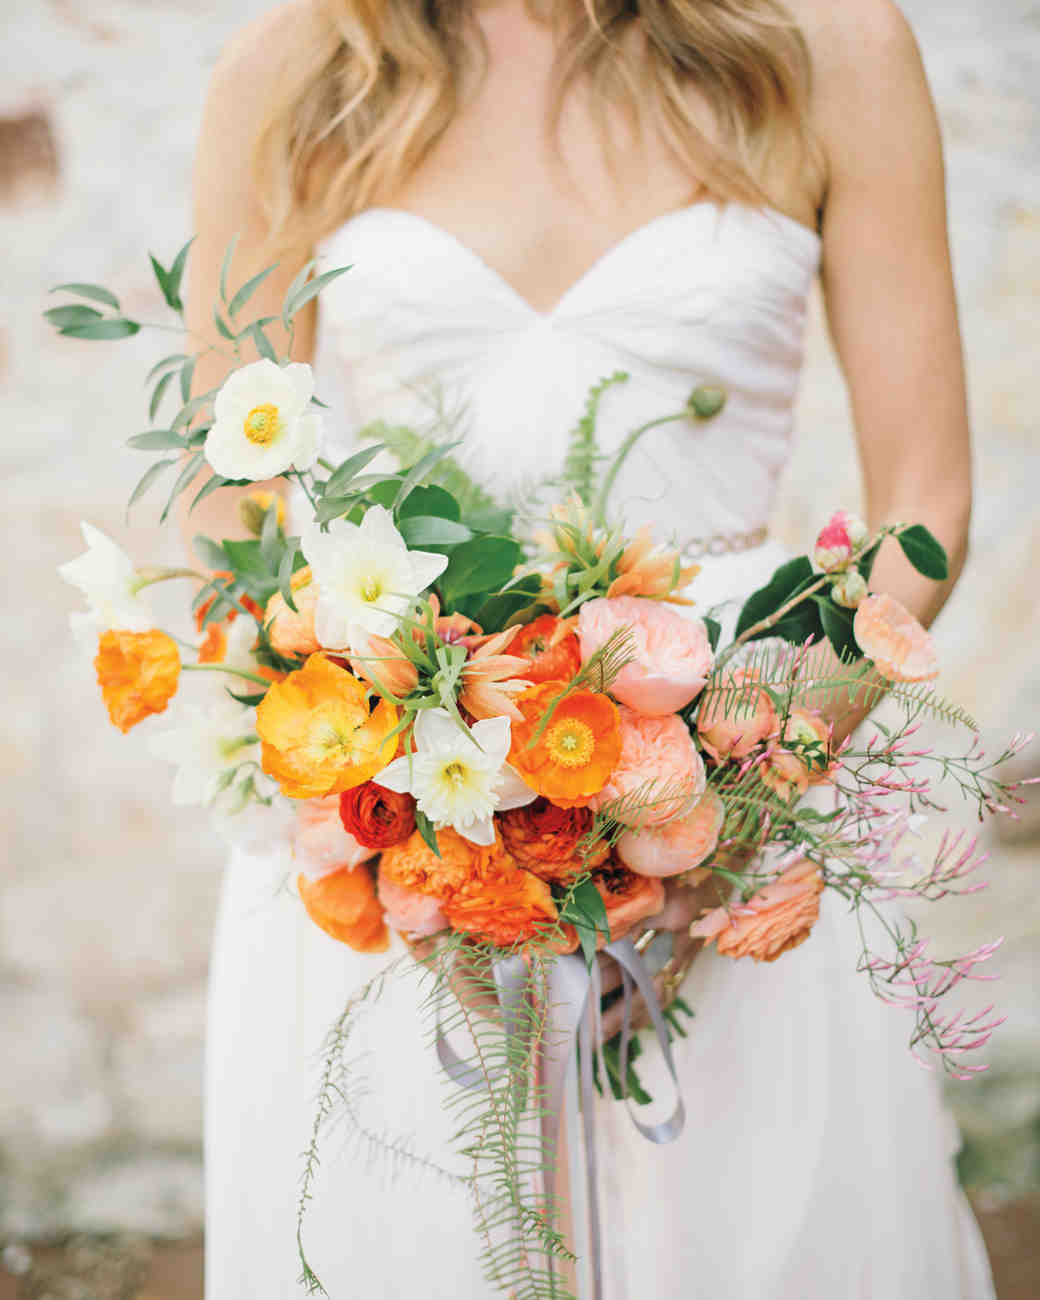 Wedding Flower Bouquets Pictures